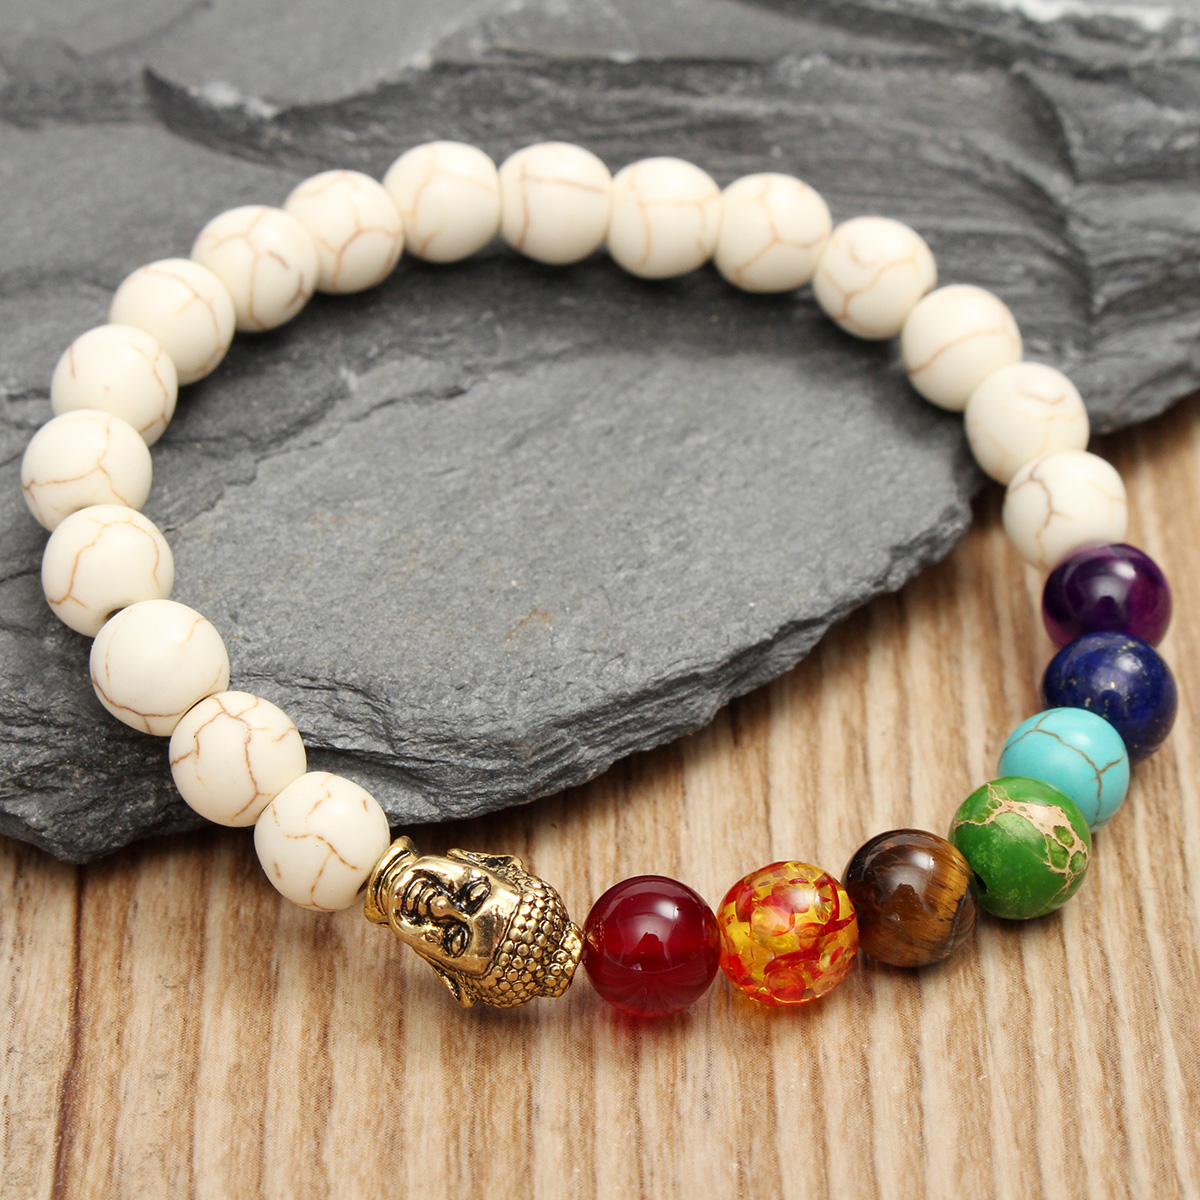 Unisex White Stone Agate Colorful Beads Prayer Elastic Bracelet